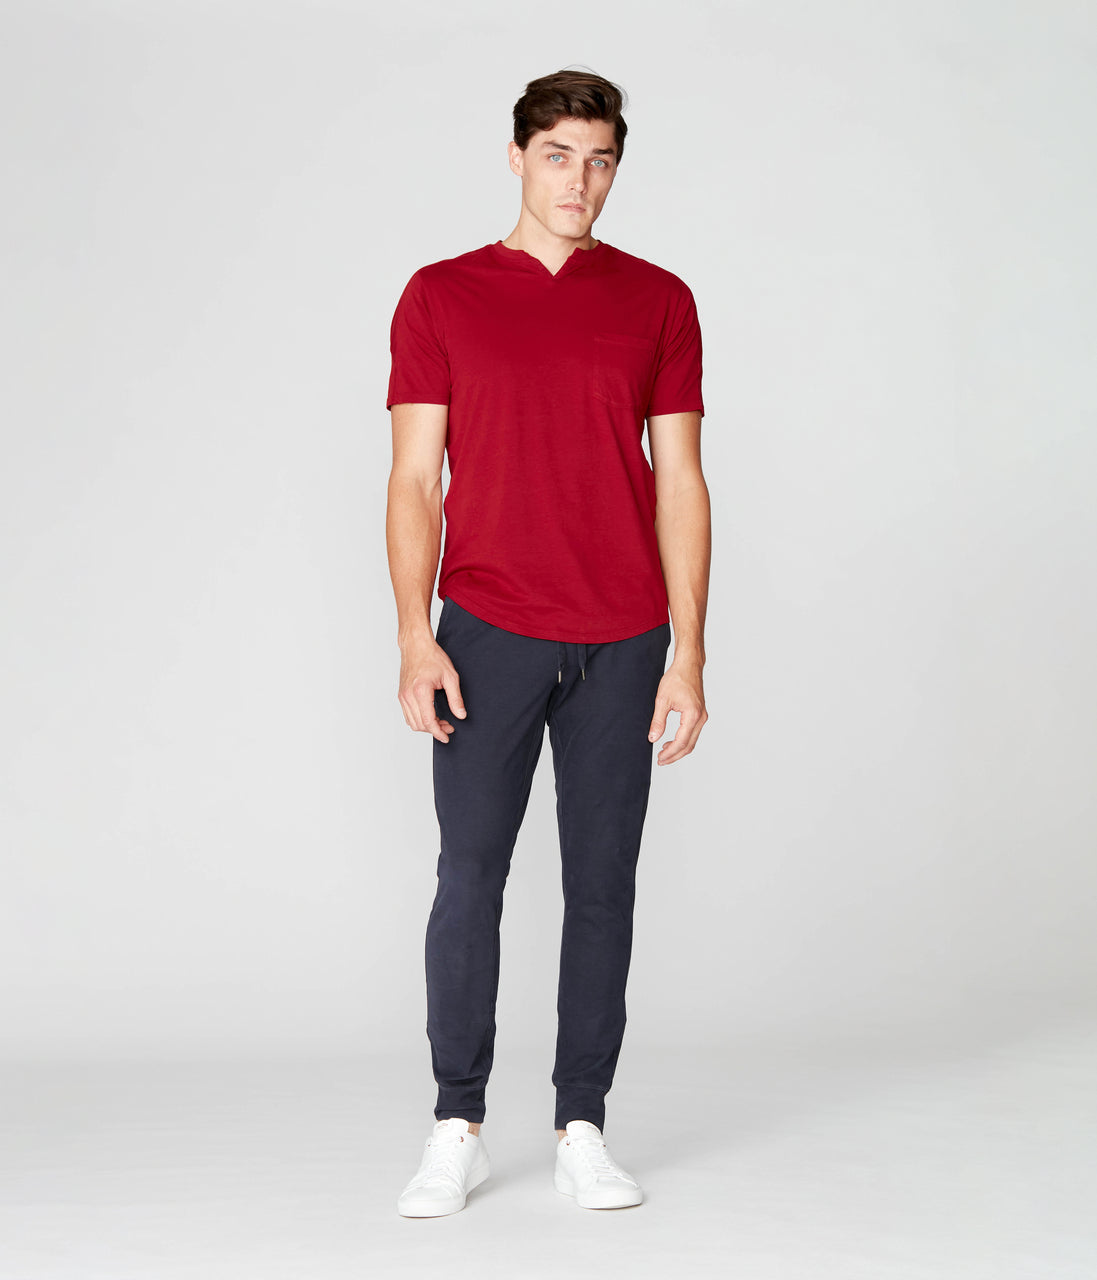 Victory V-Notch in Premium Cotton Jersey  - Red - Good Man Brand - Victory V-Notch in Premium Cotton Jersey  - Red